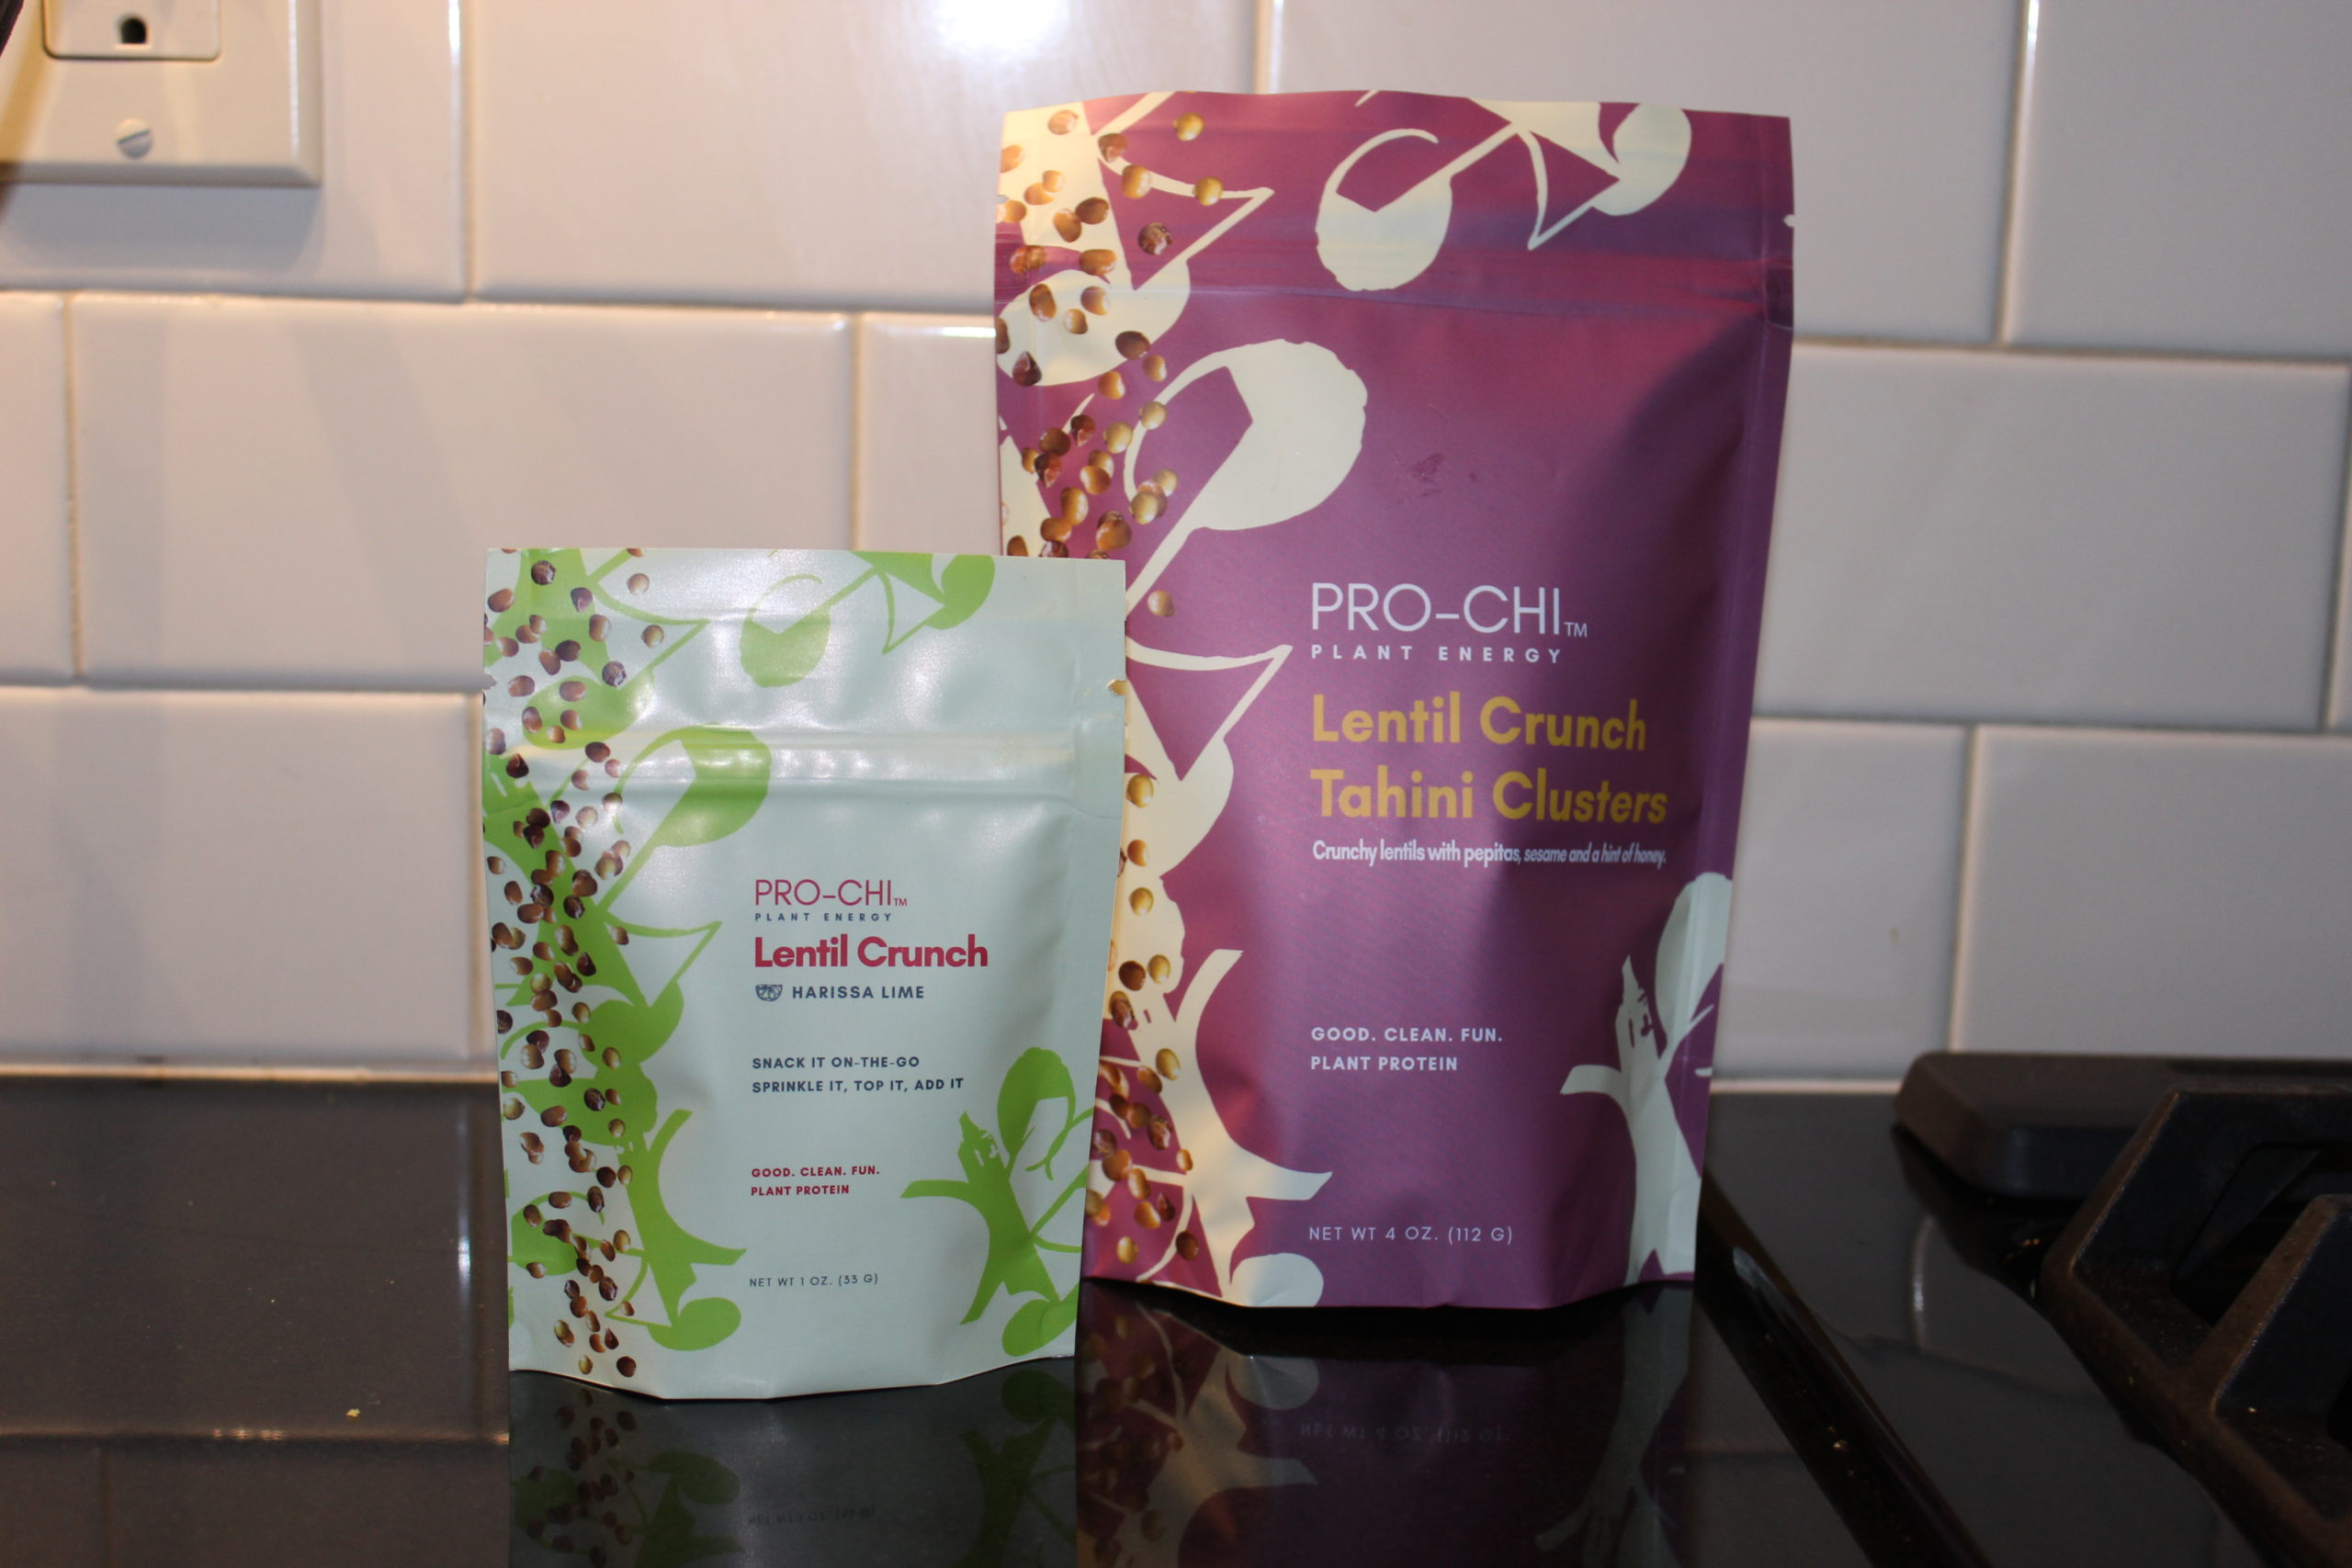 New Healthy Snack, Pro-Chi Lentil Crunch Tahini Clusters Are Nutrient Packed to Support Fitness and Recovery